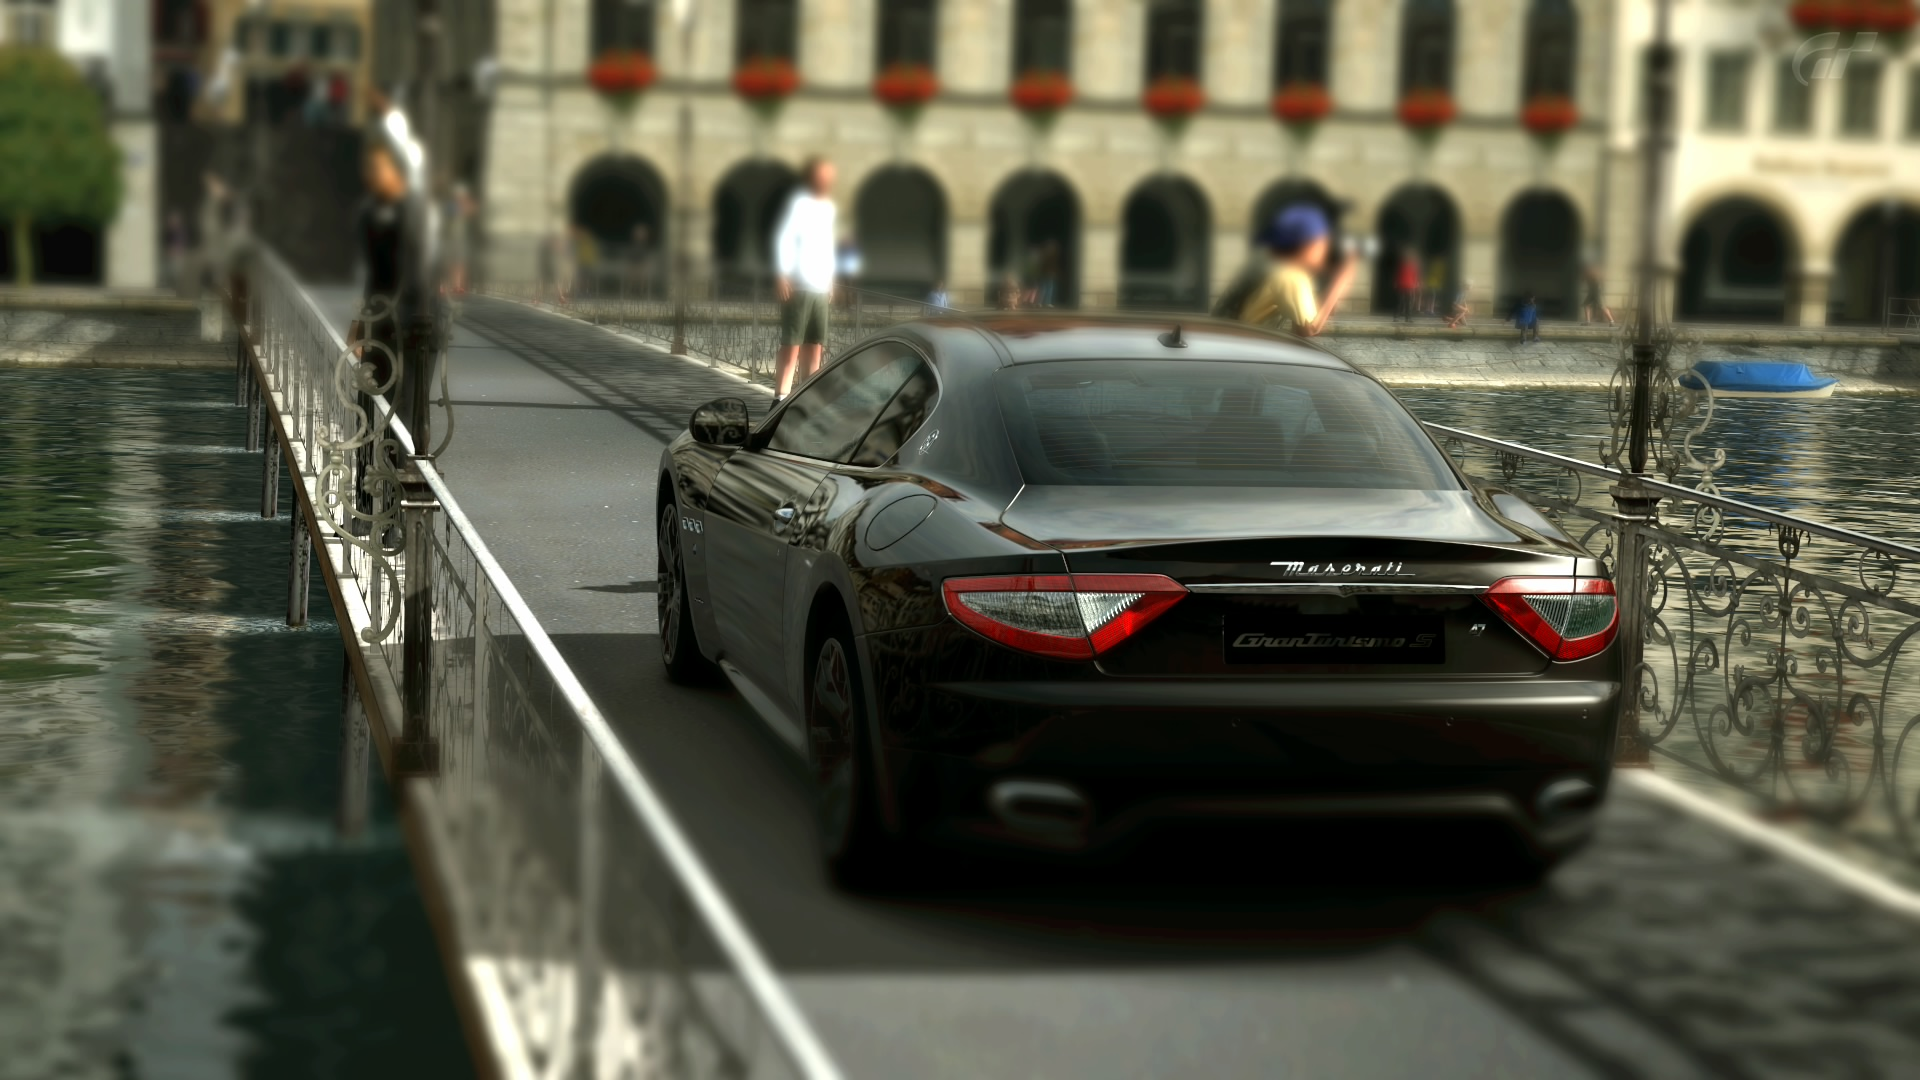 Photo Maserati Gran Turismo, rear view.